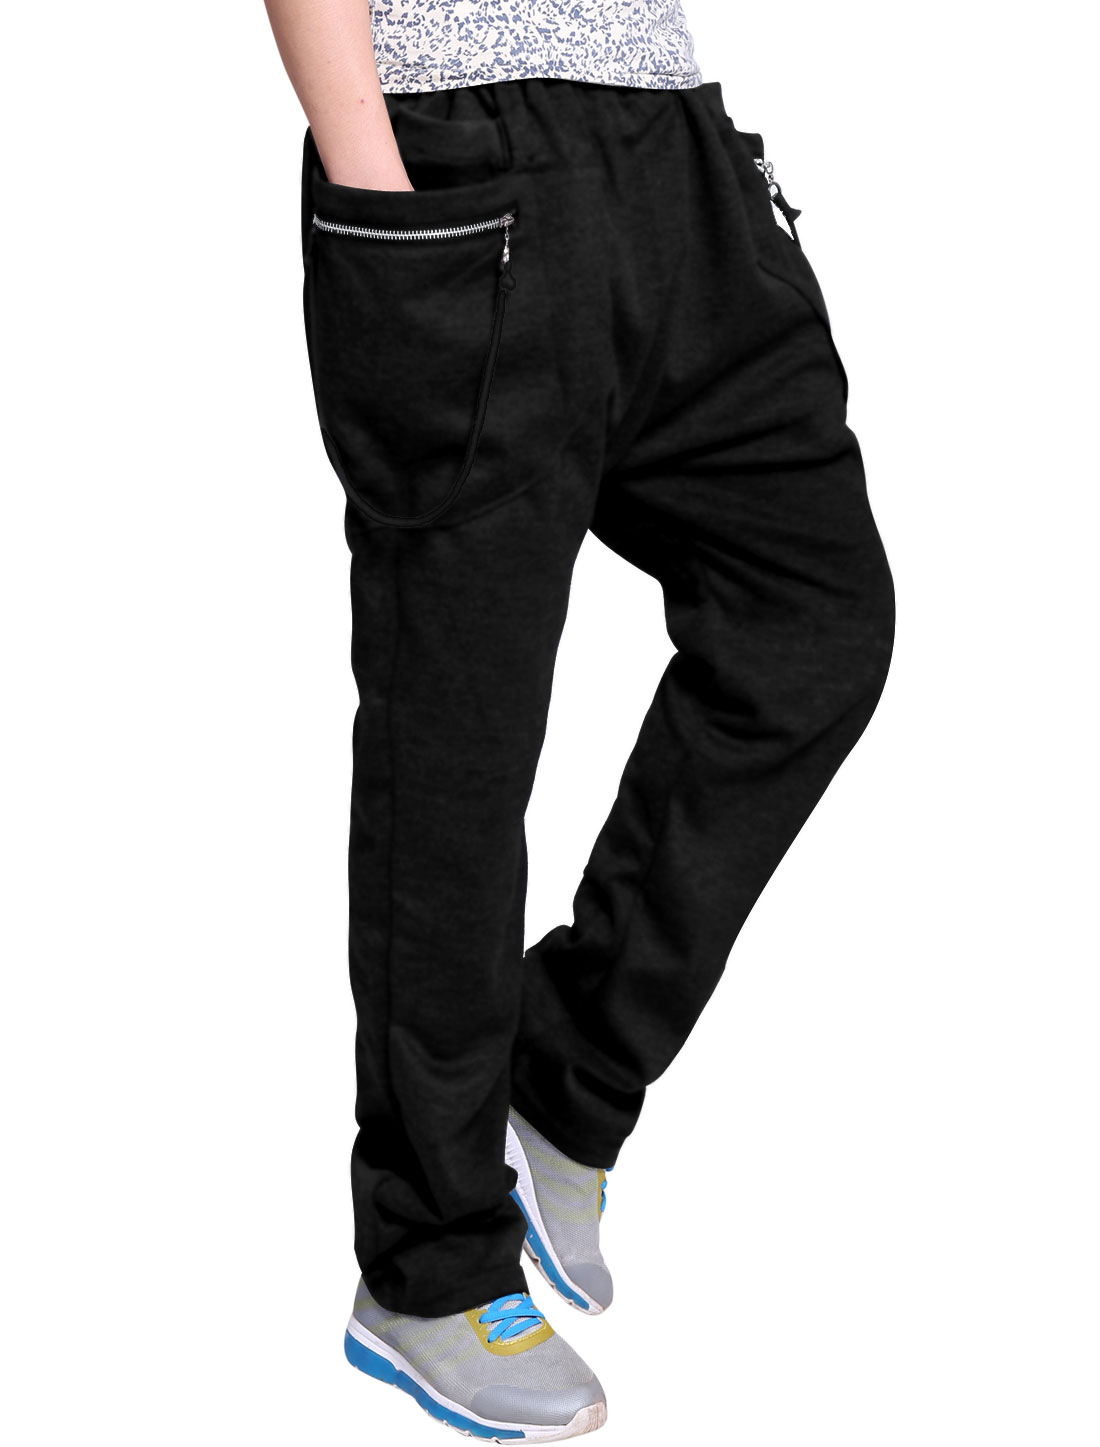 Man Stretchy Waist Double Pocket Design Black Casual Pants W34